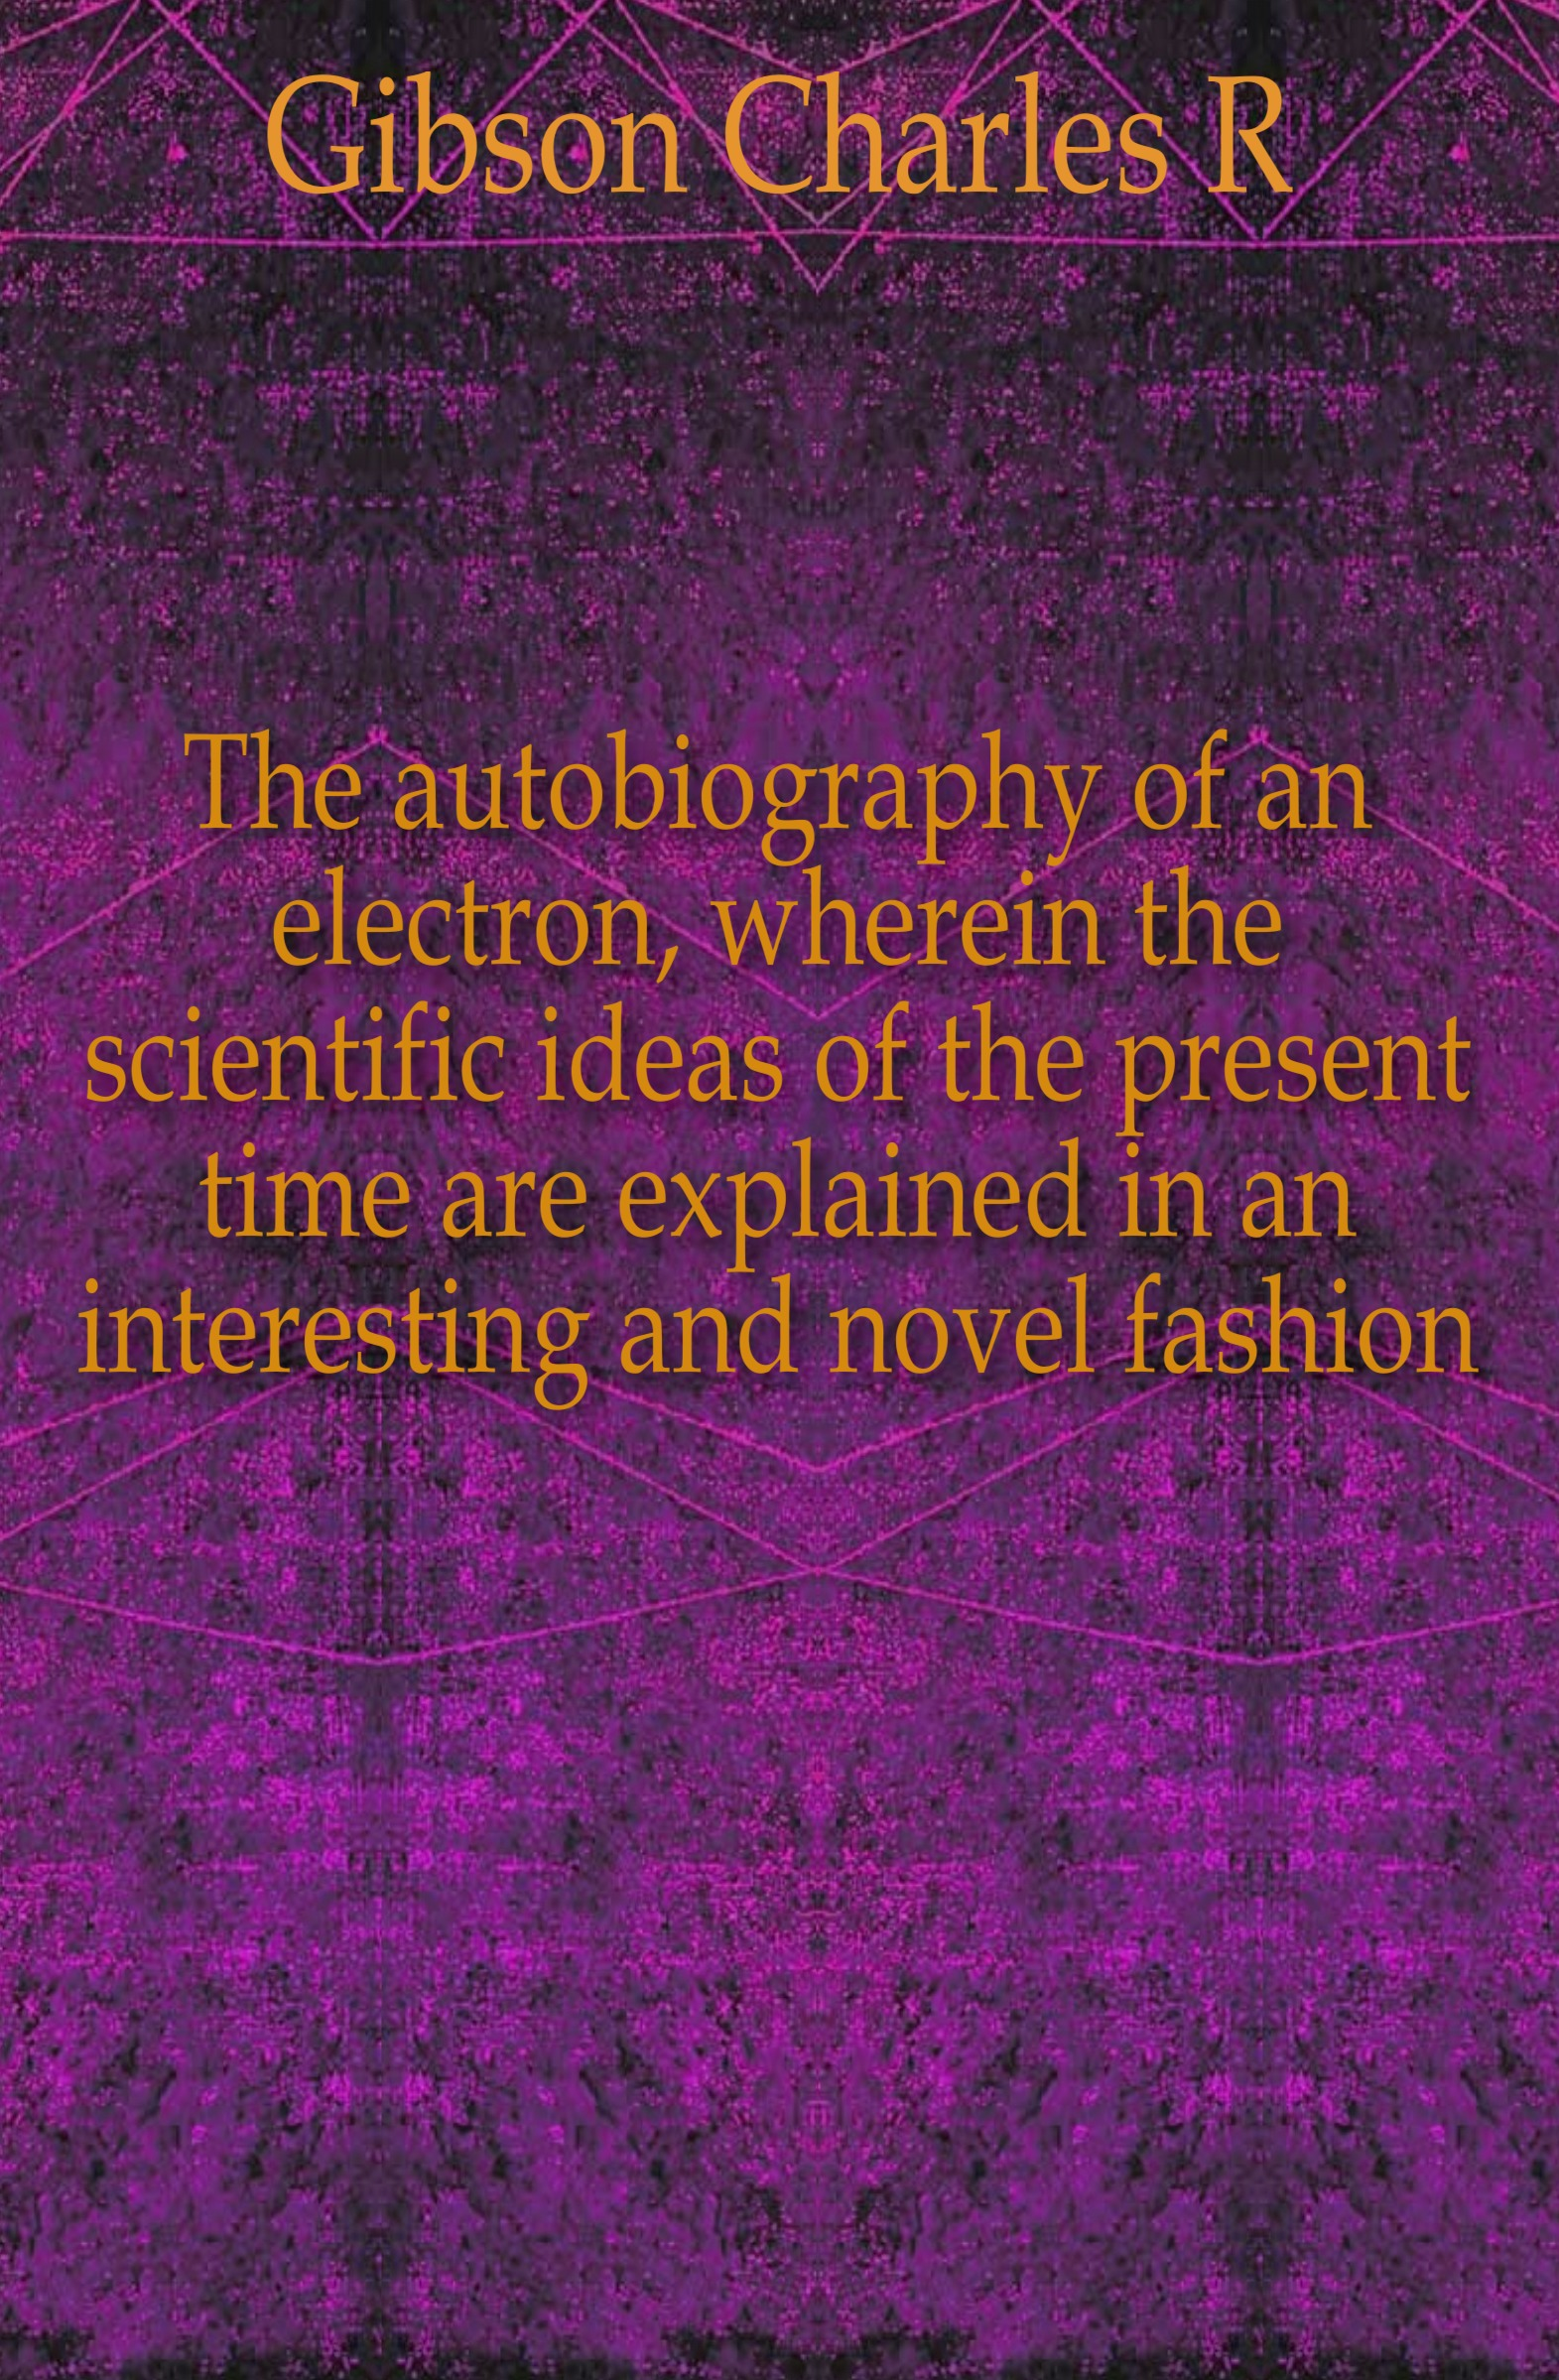 Charles R. Gibson The autobiography of an electron, wherein the scientific ideas of the present time are explained in an interesting and novel fashion